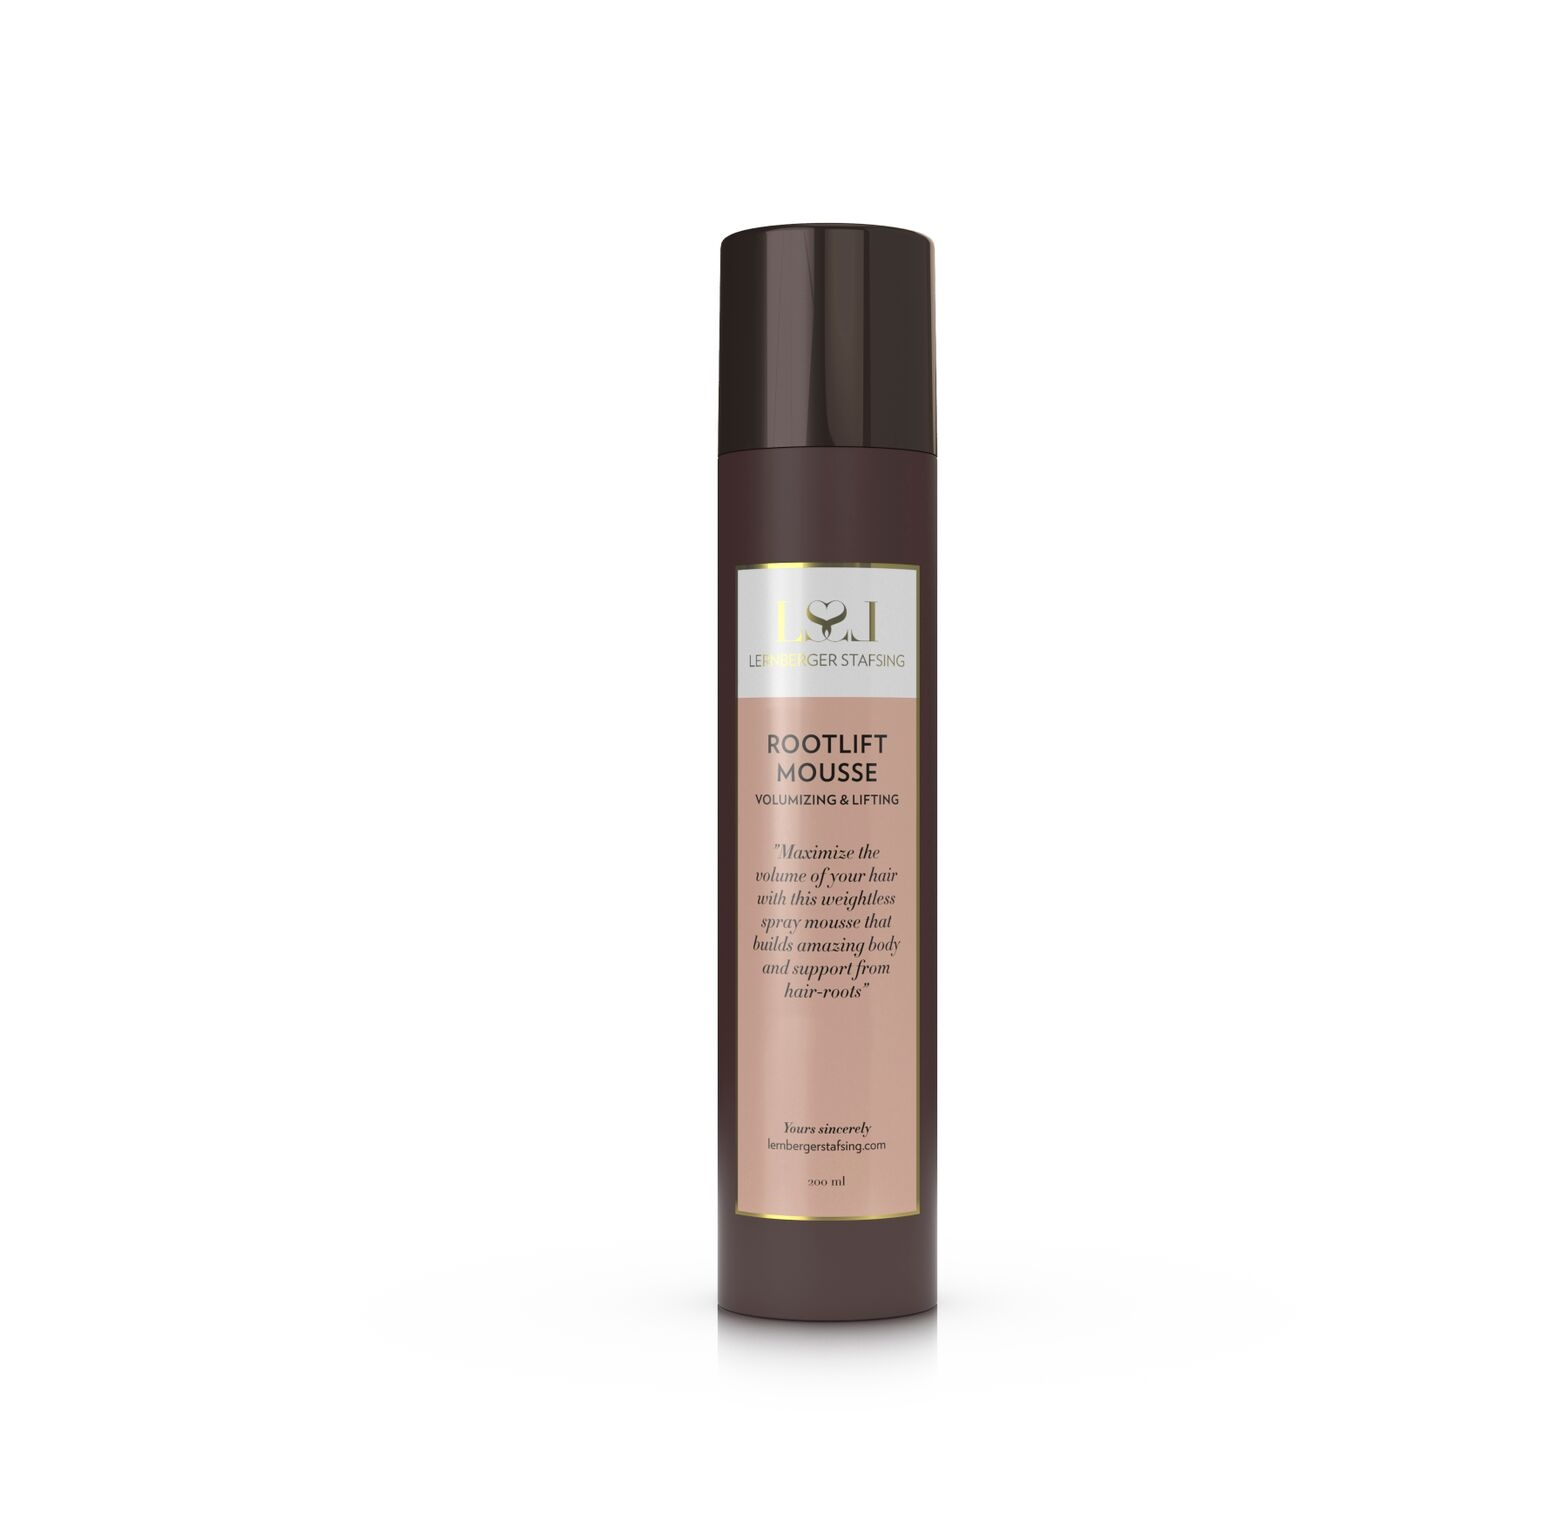 Lernberger Stafsing Root Lift Mousse, 200 ml